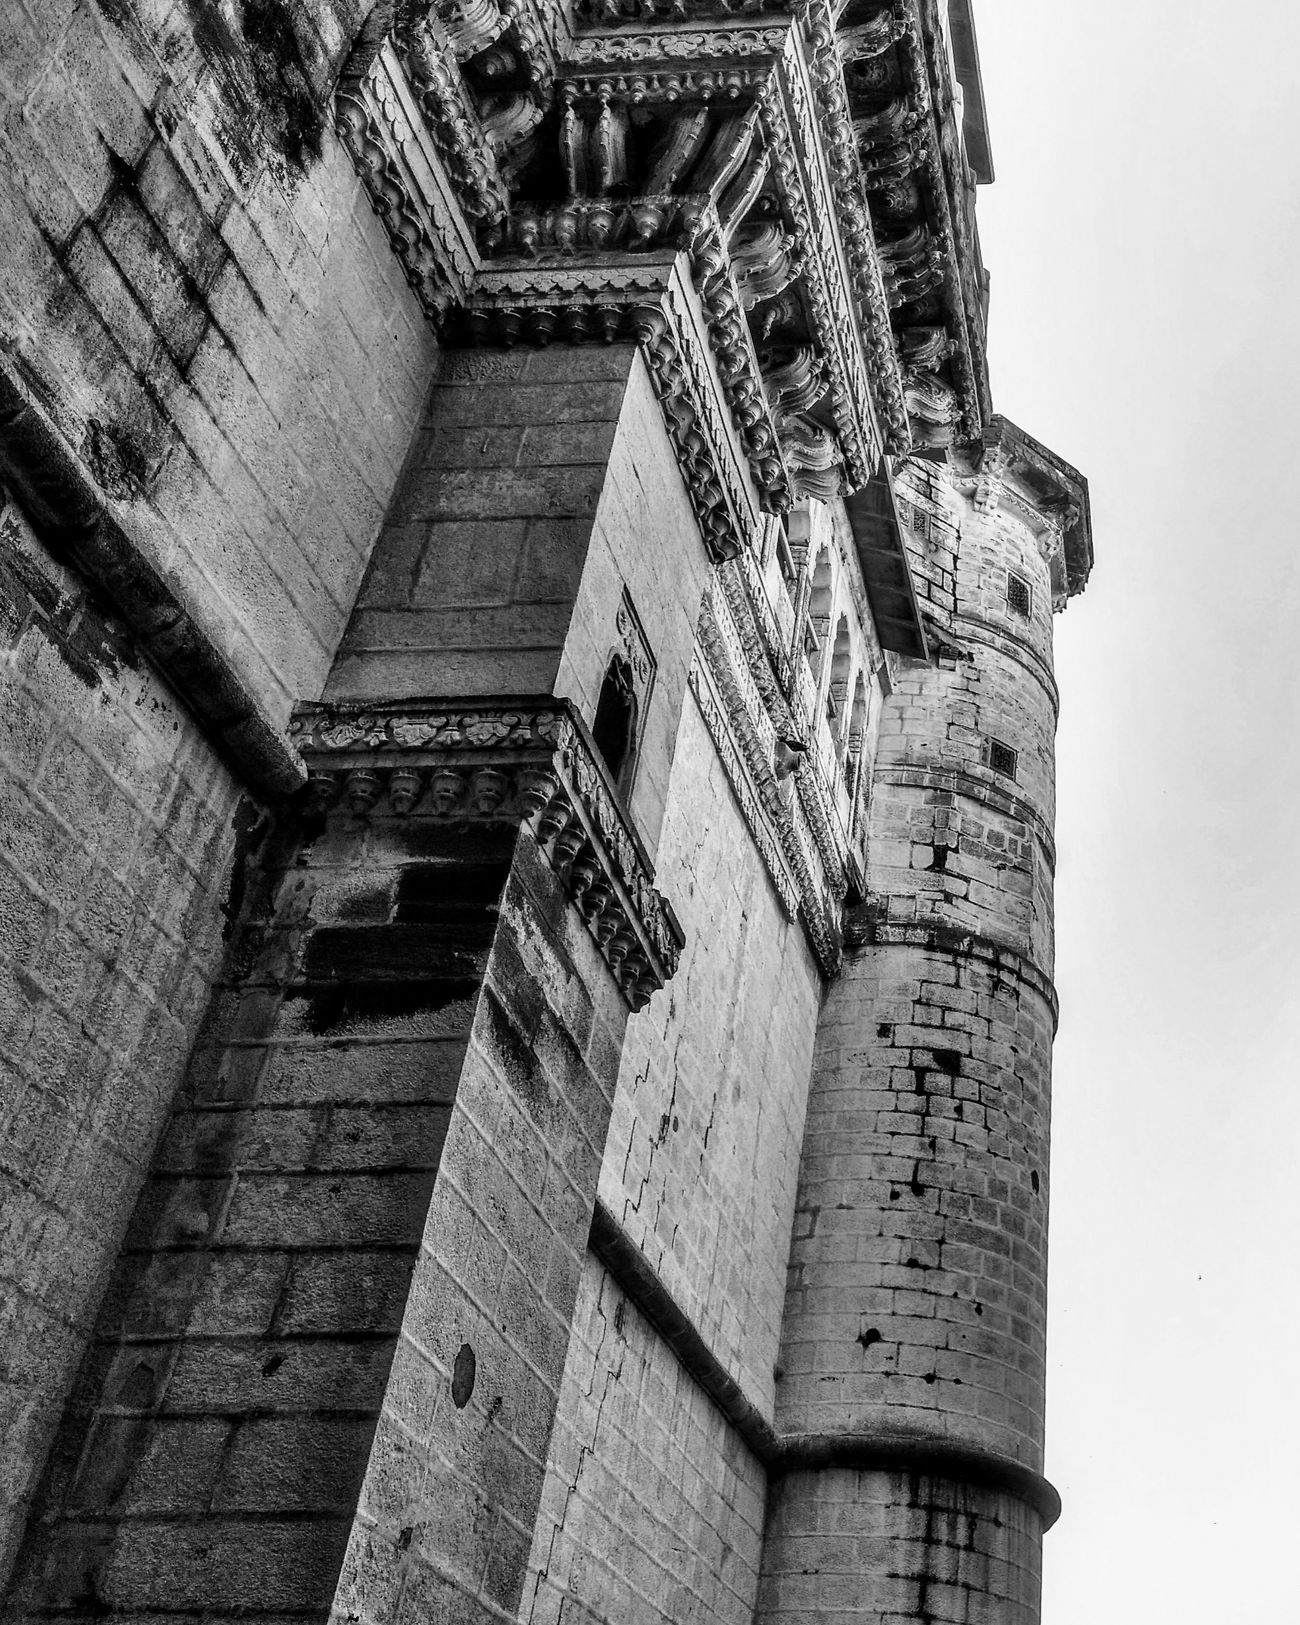 Architecture Built Structure Low Angle View Building Exterior Outdoors No People Teampixel Historical Building Historic City Incredible India Jodhpur Rajasthan Madebygoogle Shotbypixel Bnw_collection Bnw Photography